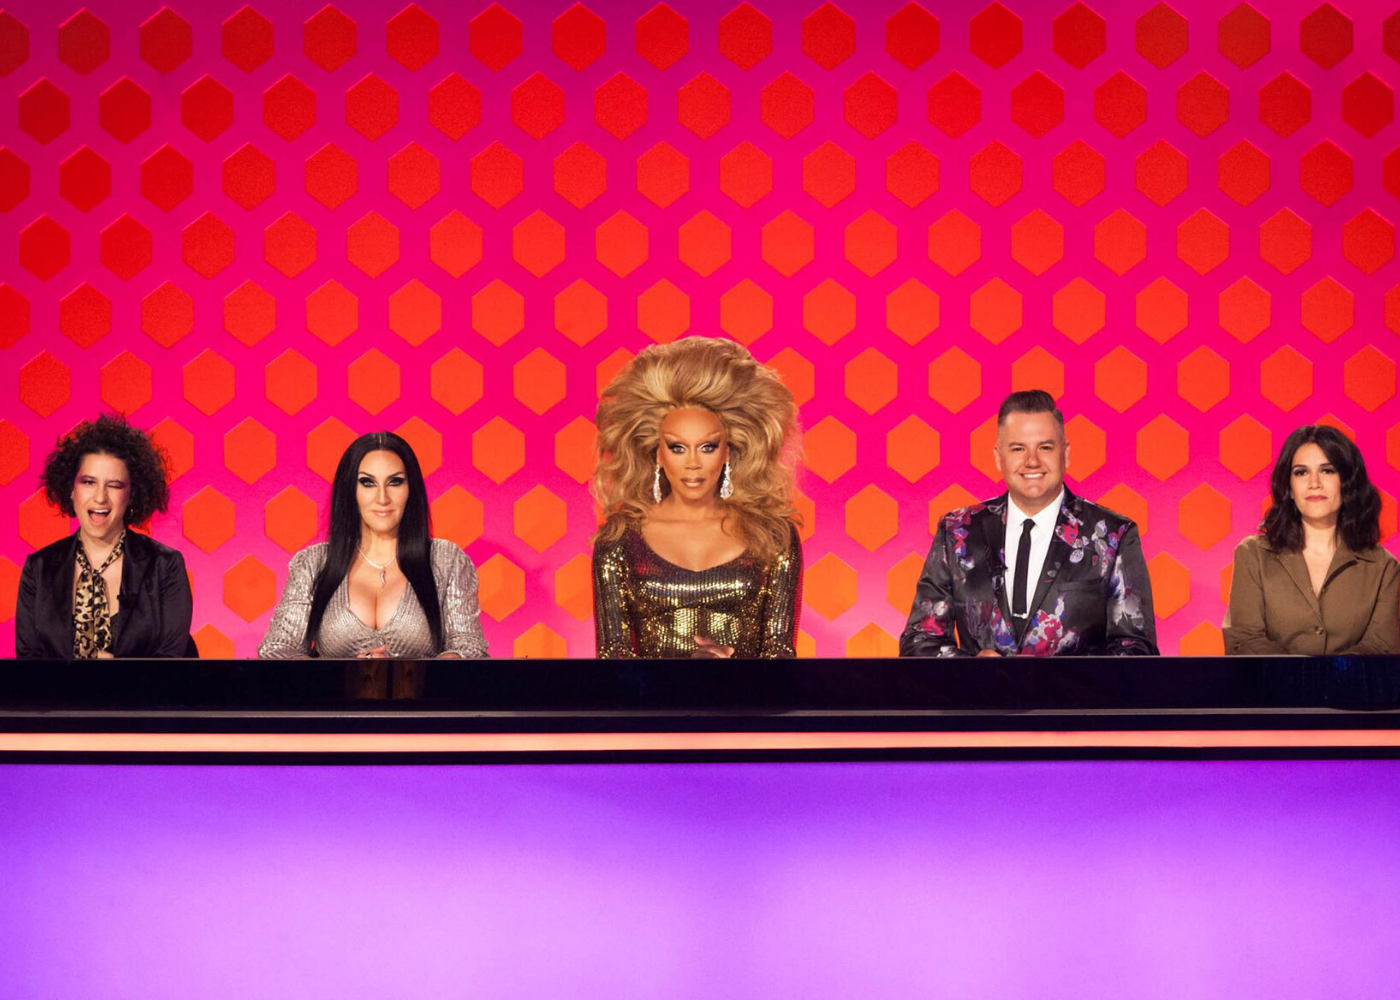 LGBTQ movies and shows: Rupaul's Drag Race